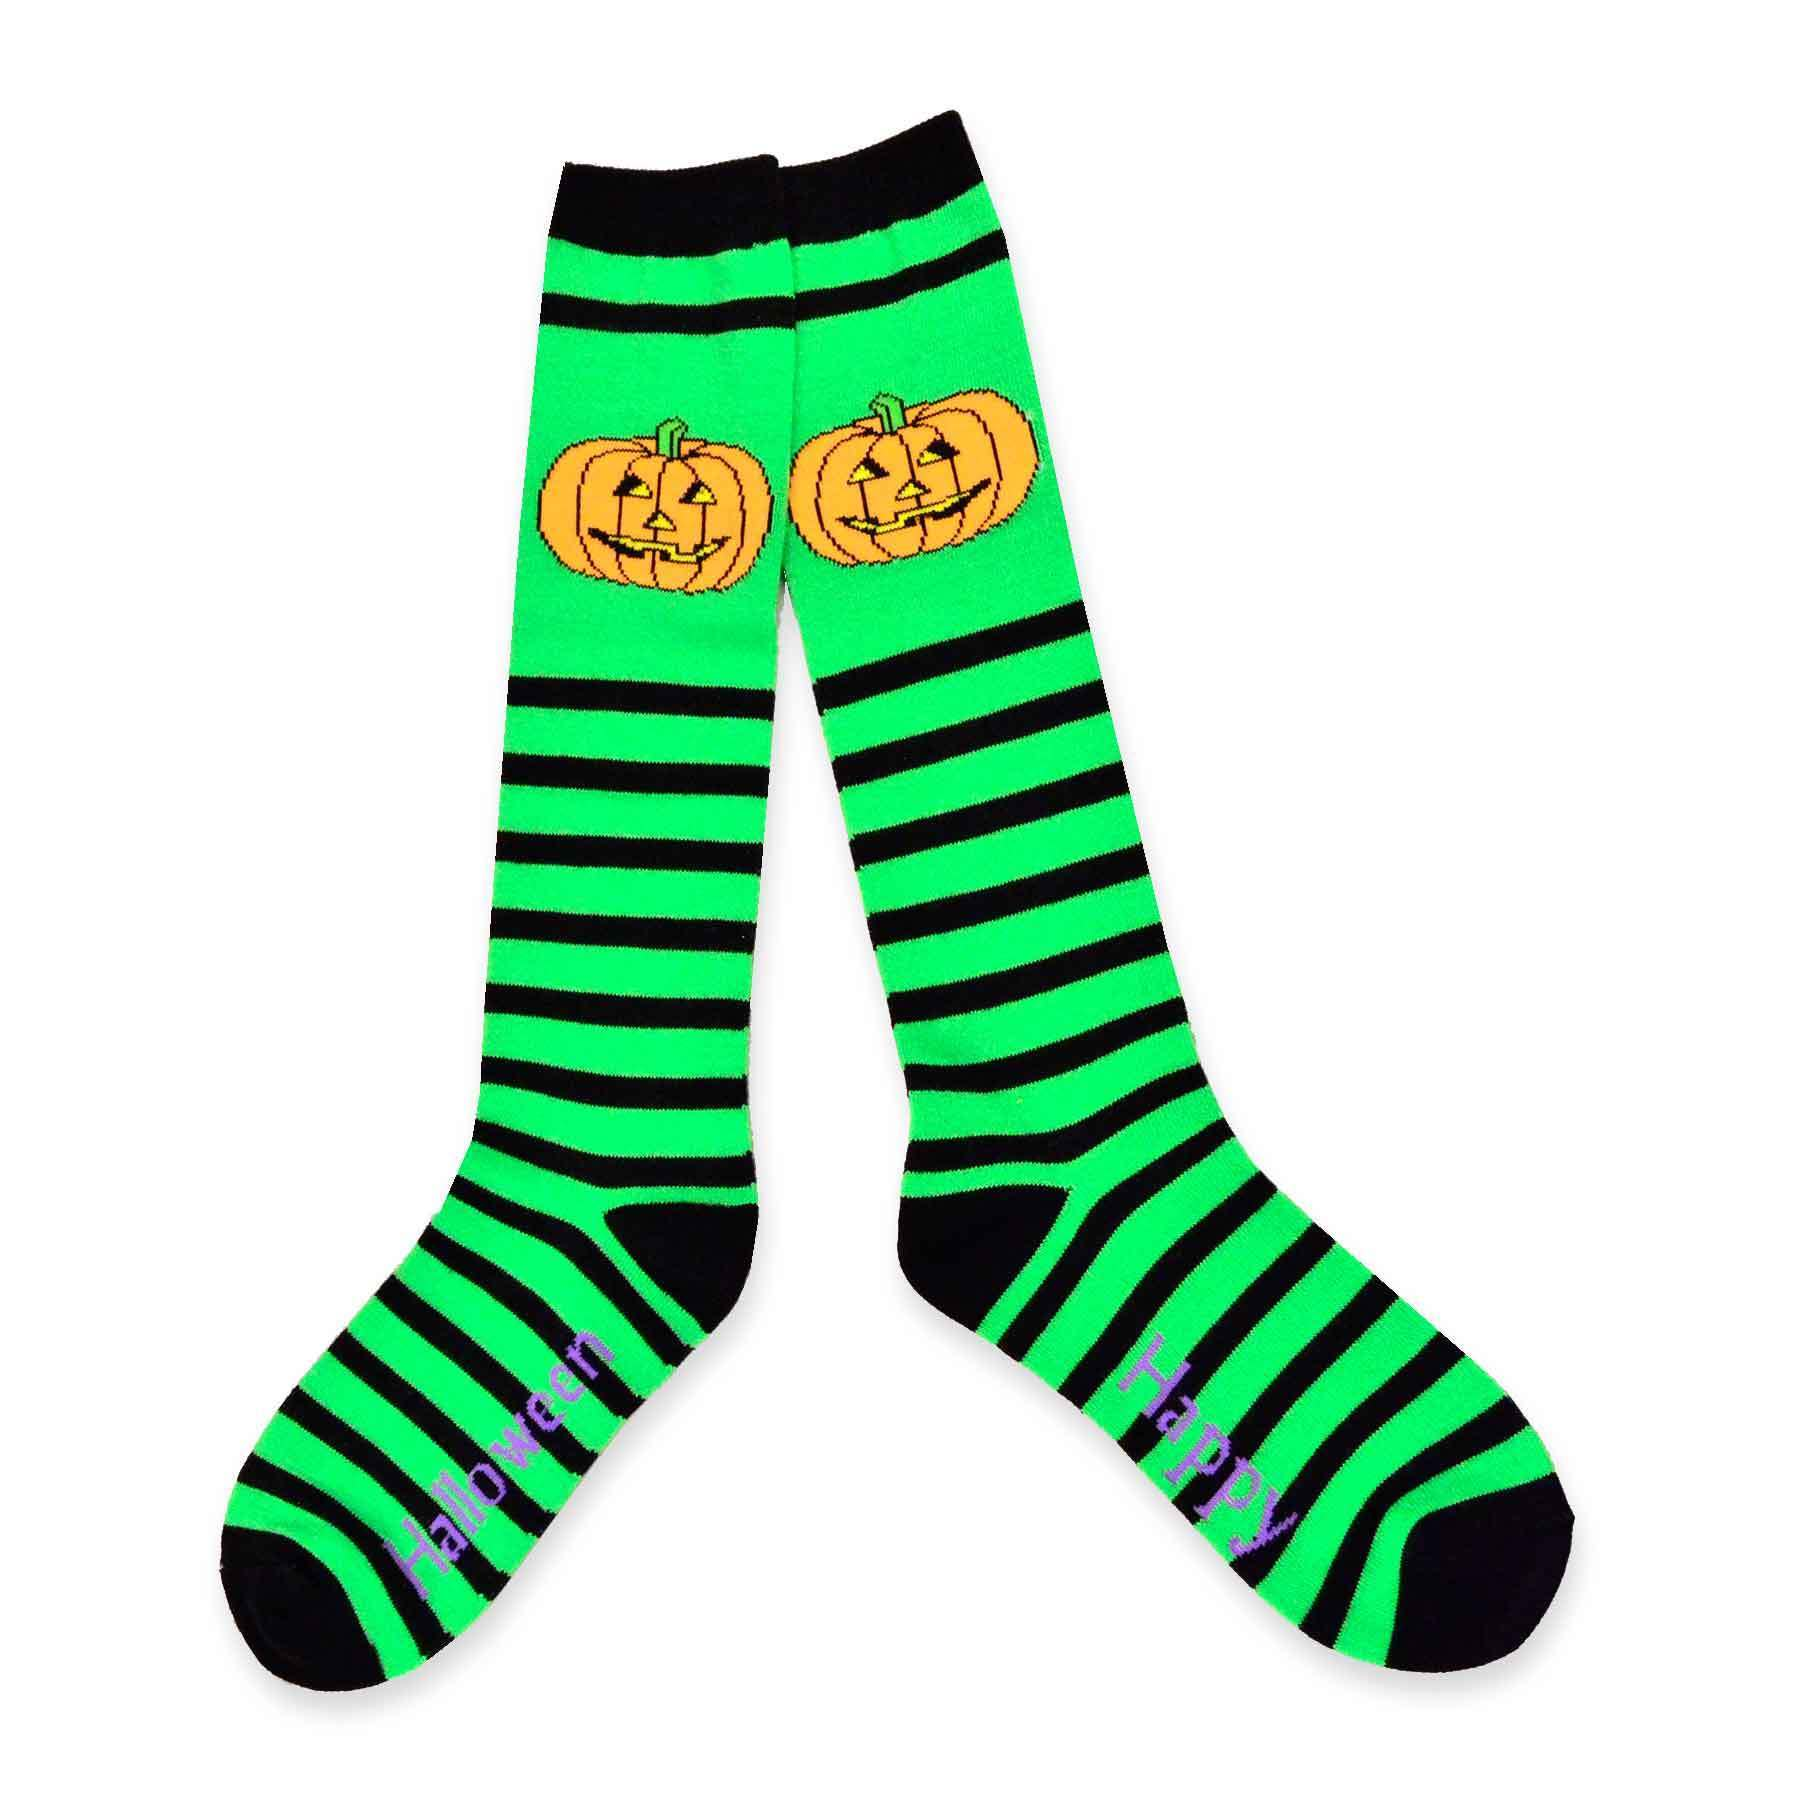 7c022b6232f Shop Women s Halloween Fun Crew Knee-High Sock Single Pair - Free Shipping  On Orders Over  45 - Overstock.com - 10639306